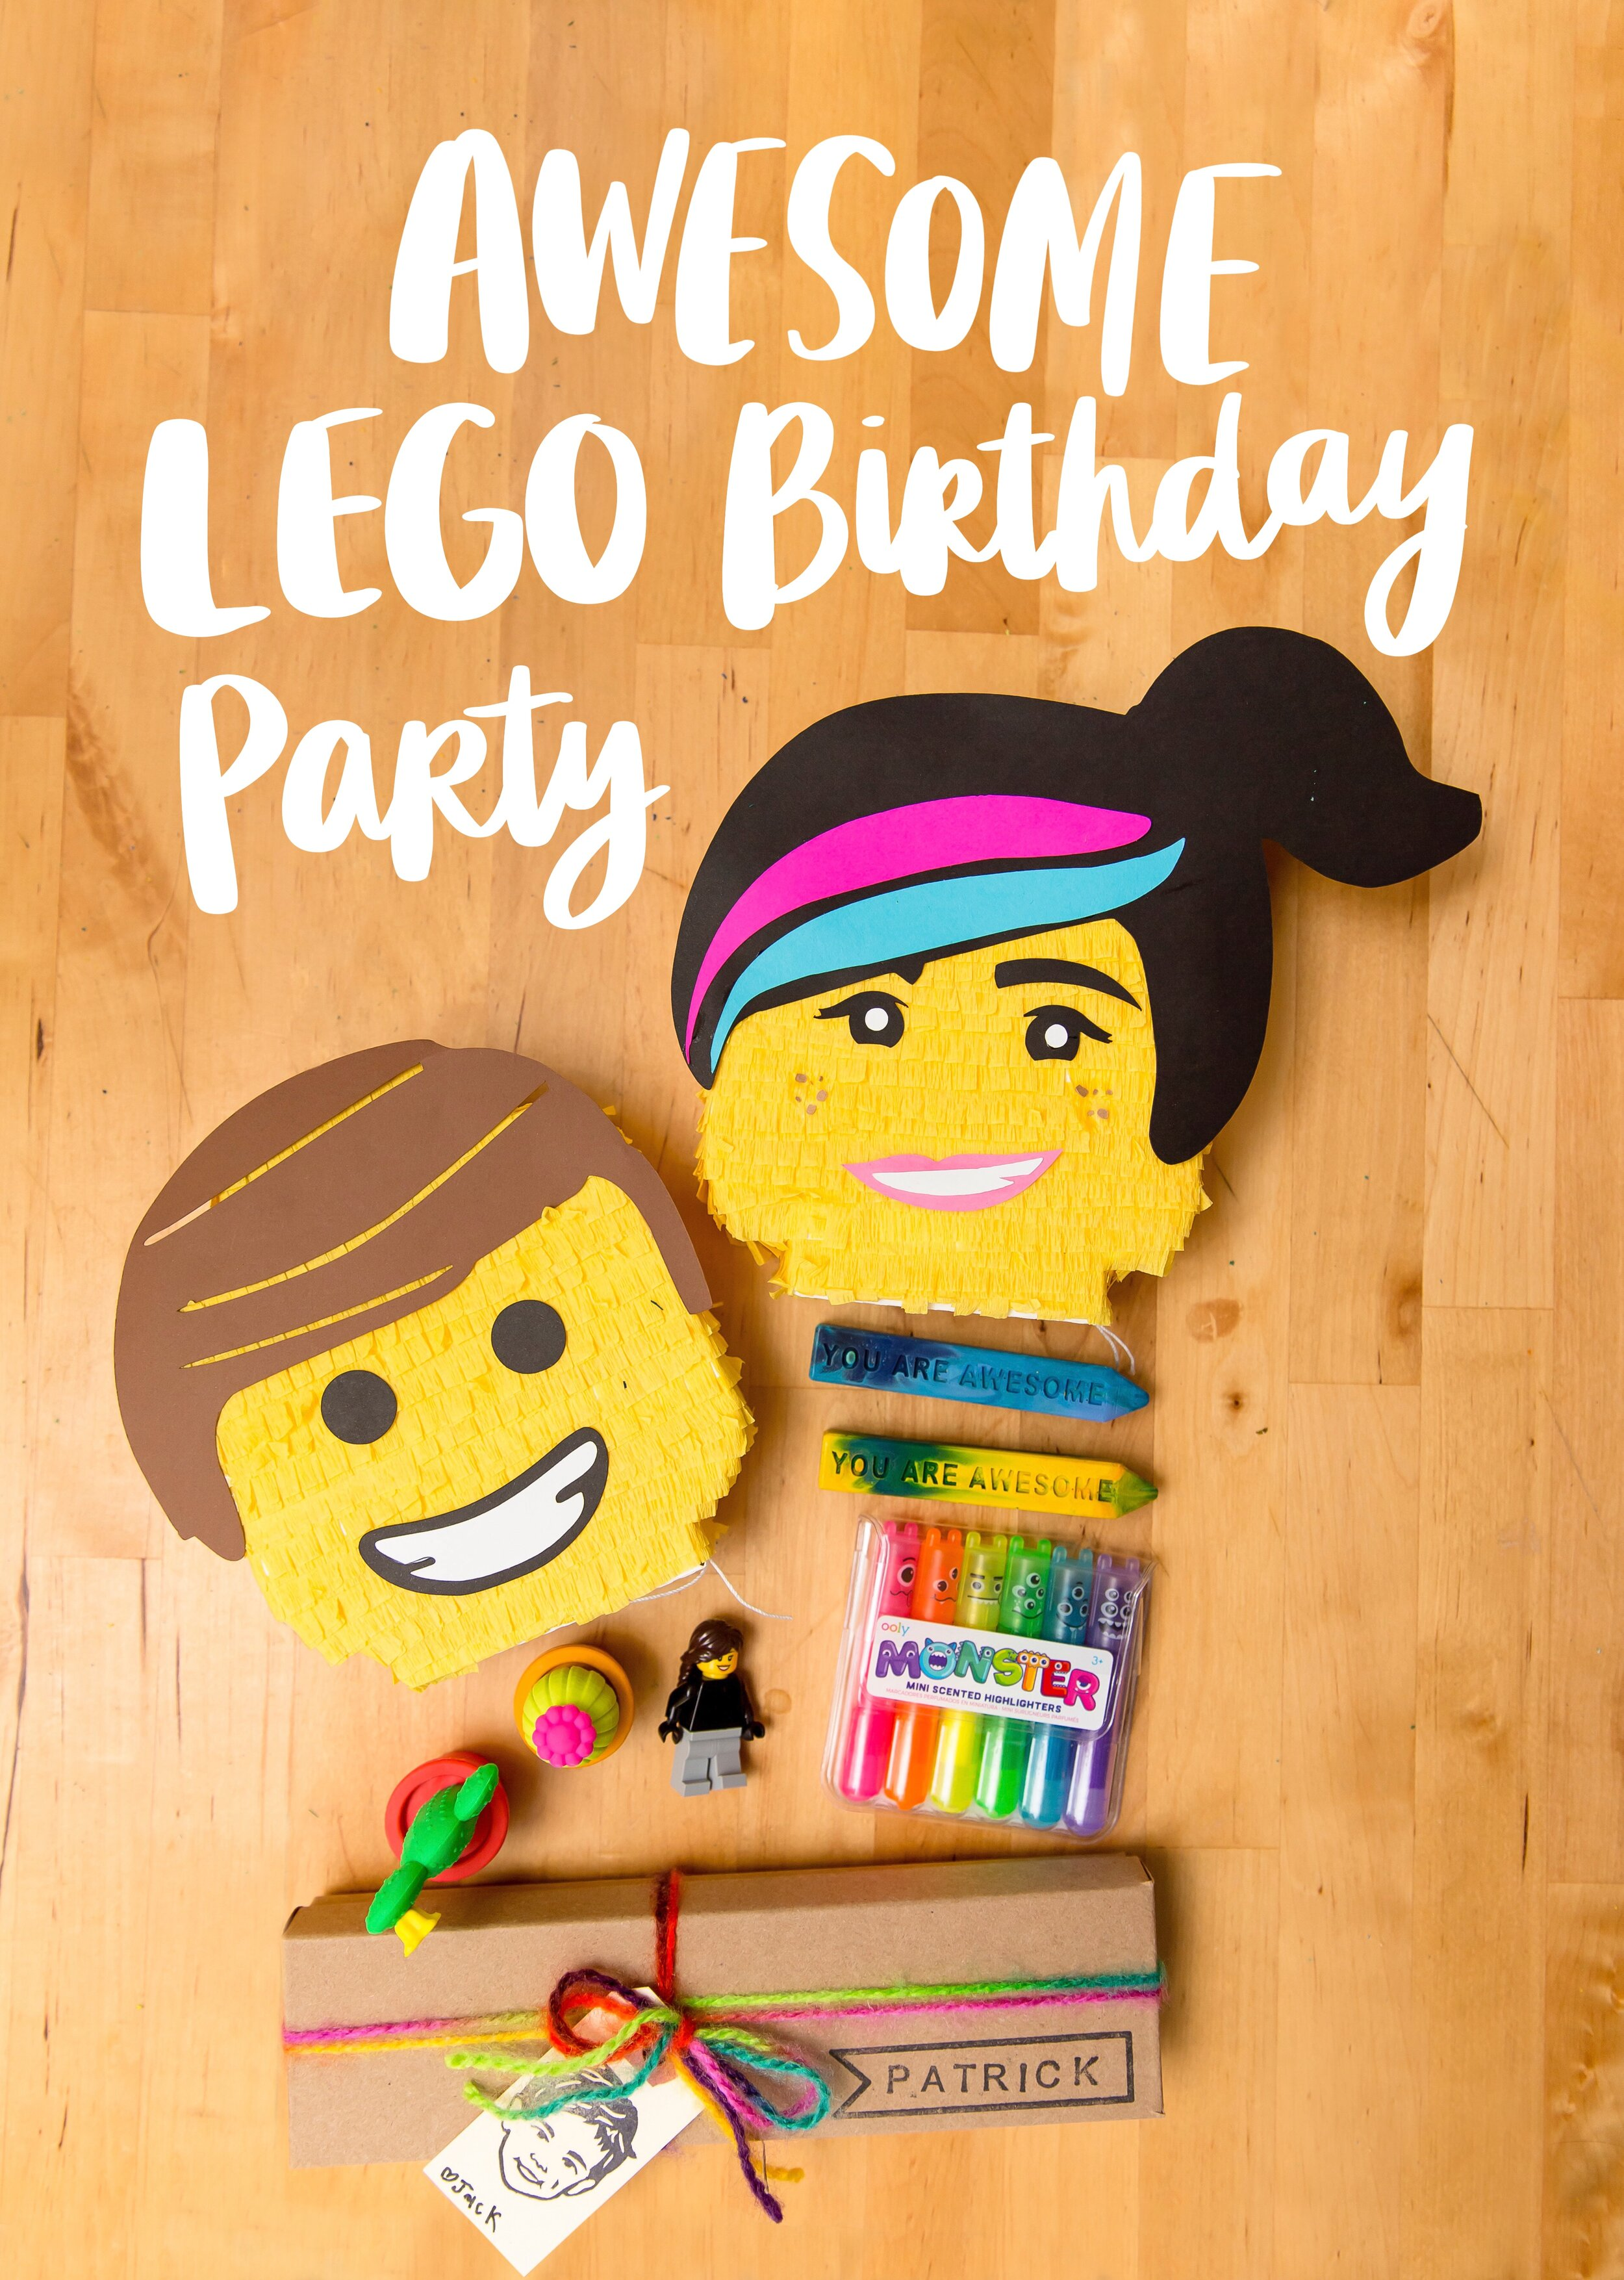 Awesome Lego Birthday Party